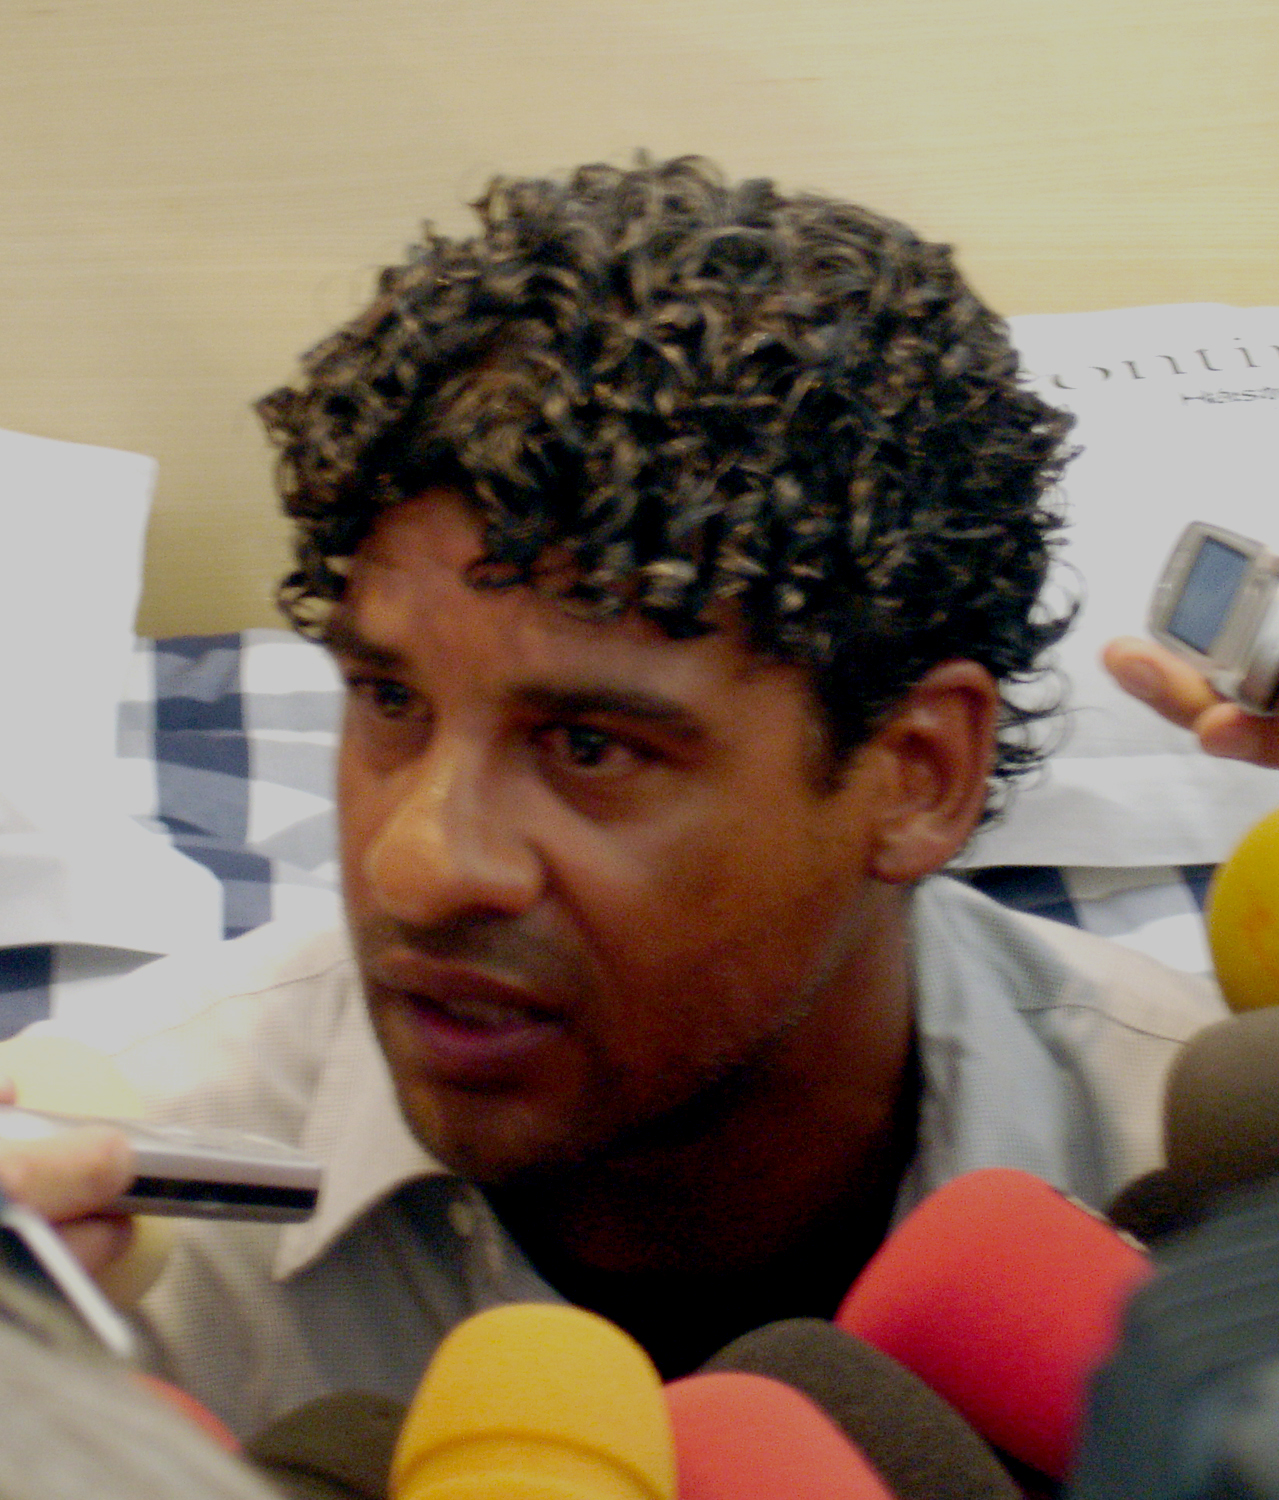 The 55-year old son of father (?) and mother(?) Frank Rijkaard in 2018 photo. Frank Rijkaard earned a  million dollar salary - leaving the net worth at 20 million in 2018